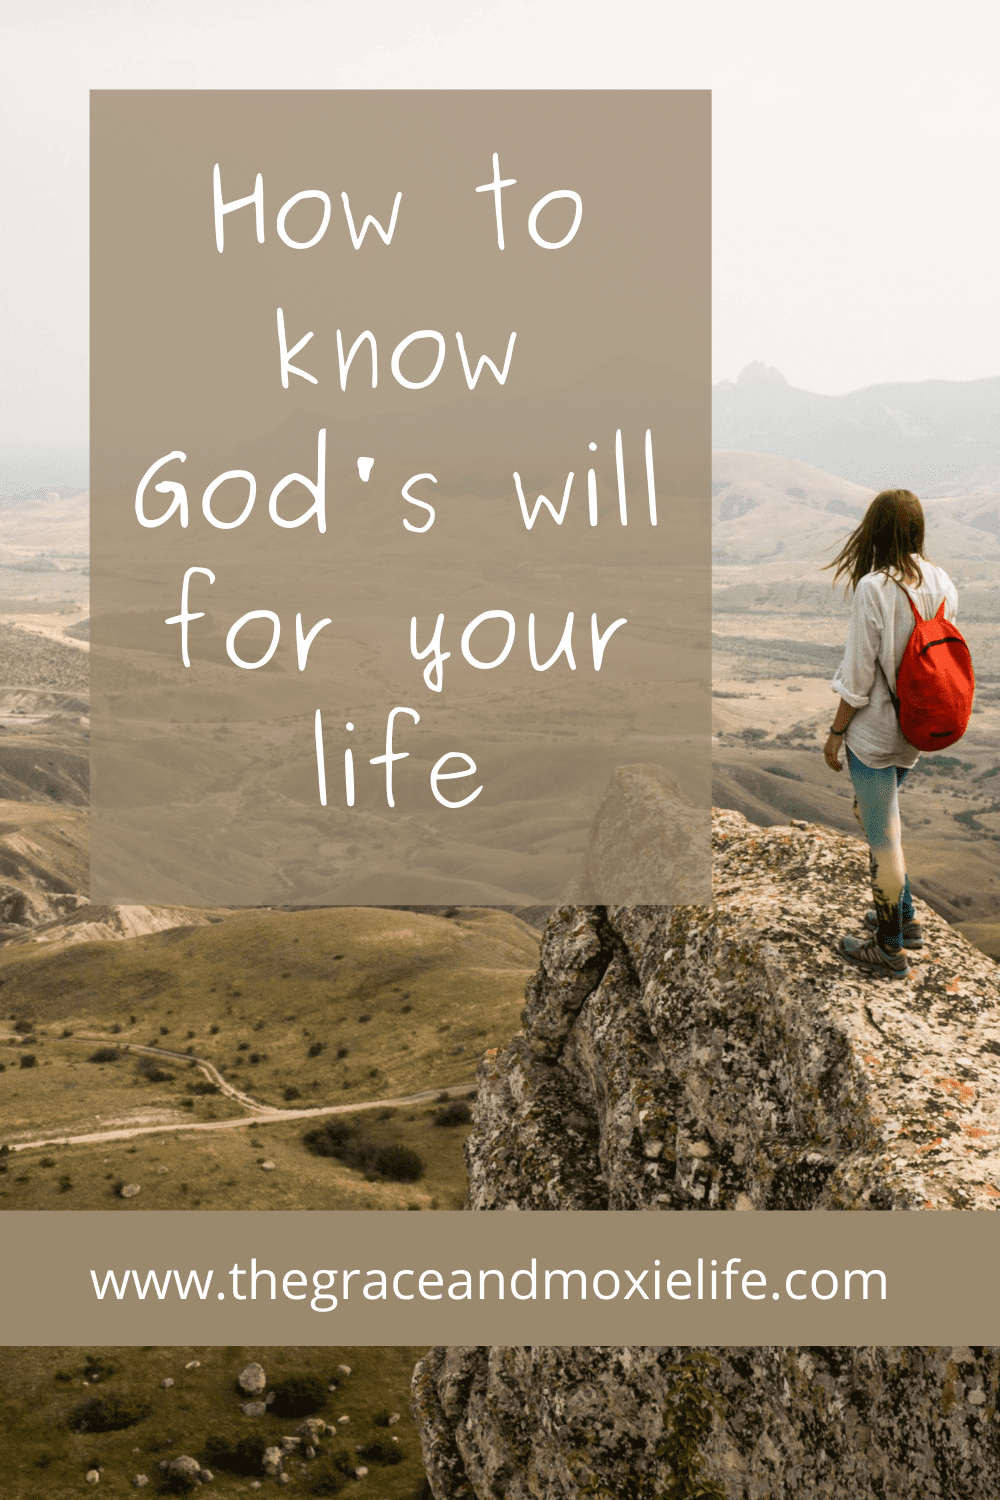 How to Know God's Will For Your Life | The Grace and Moxie Life